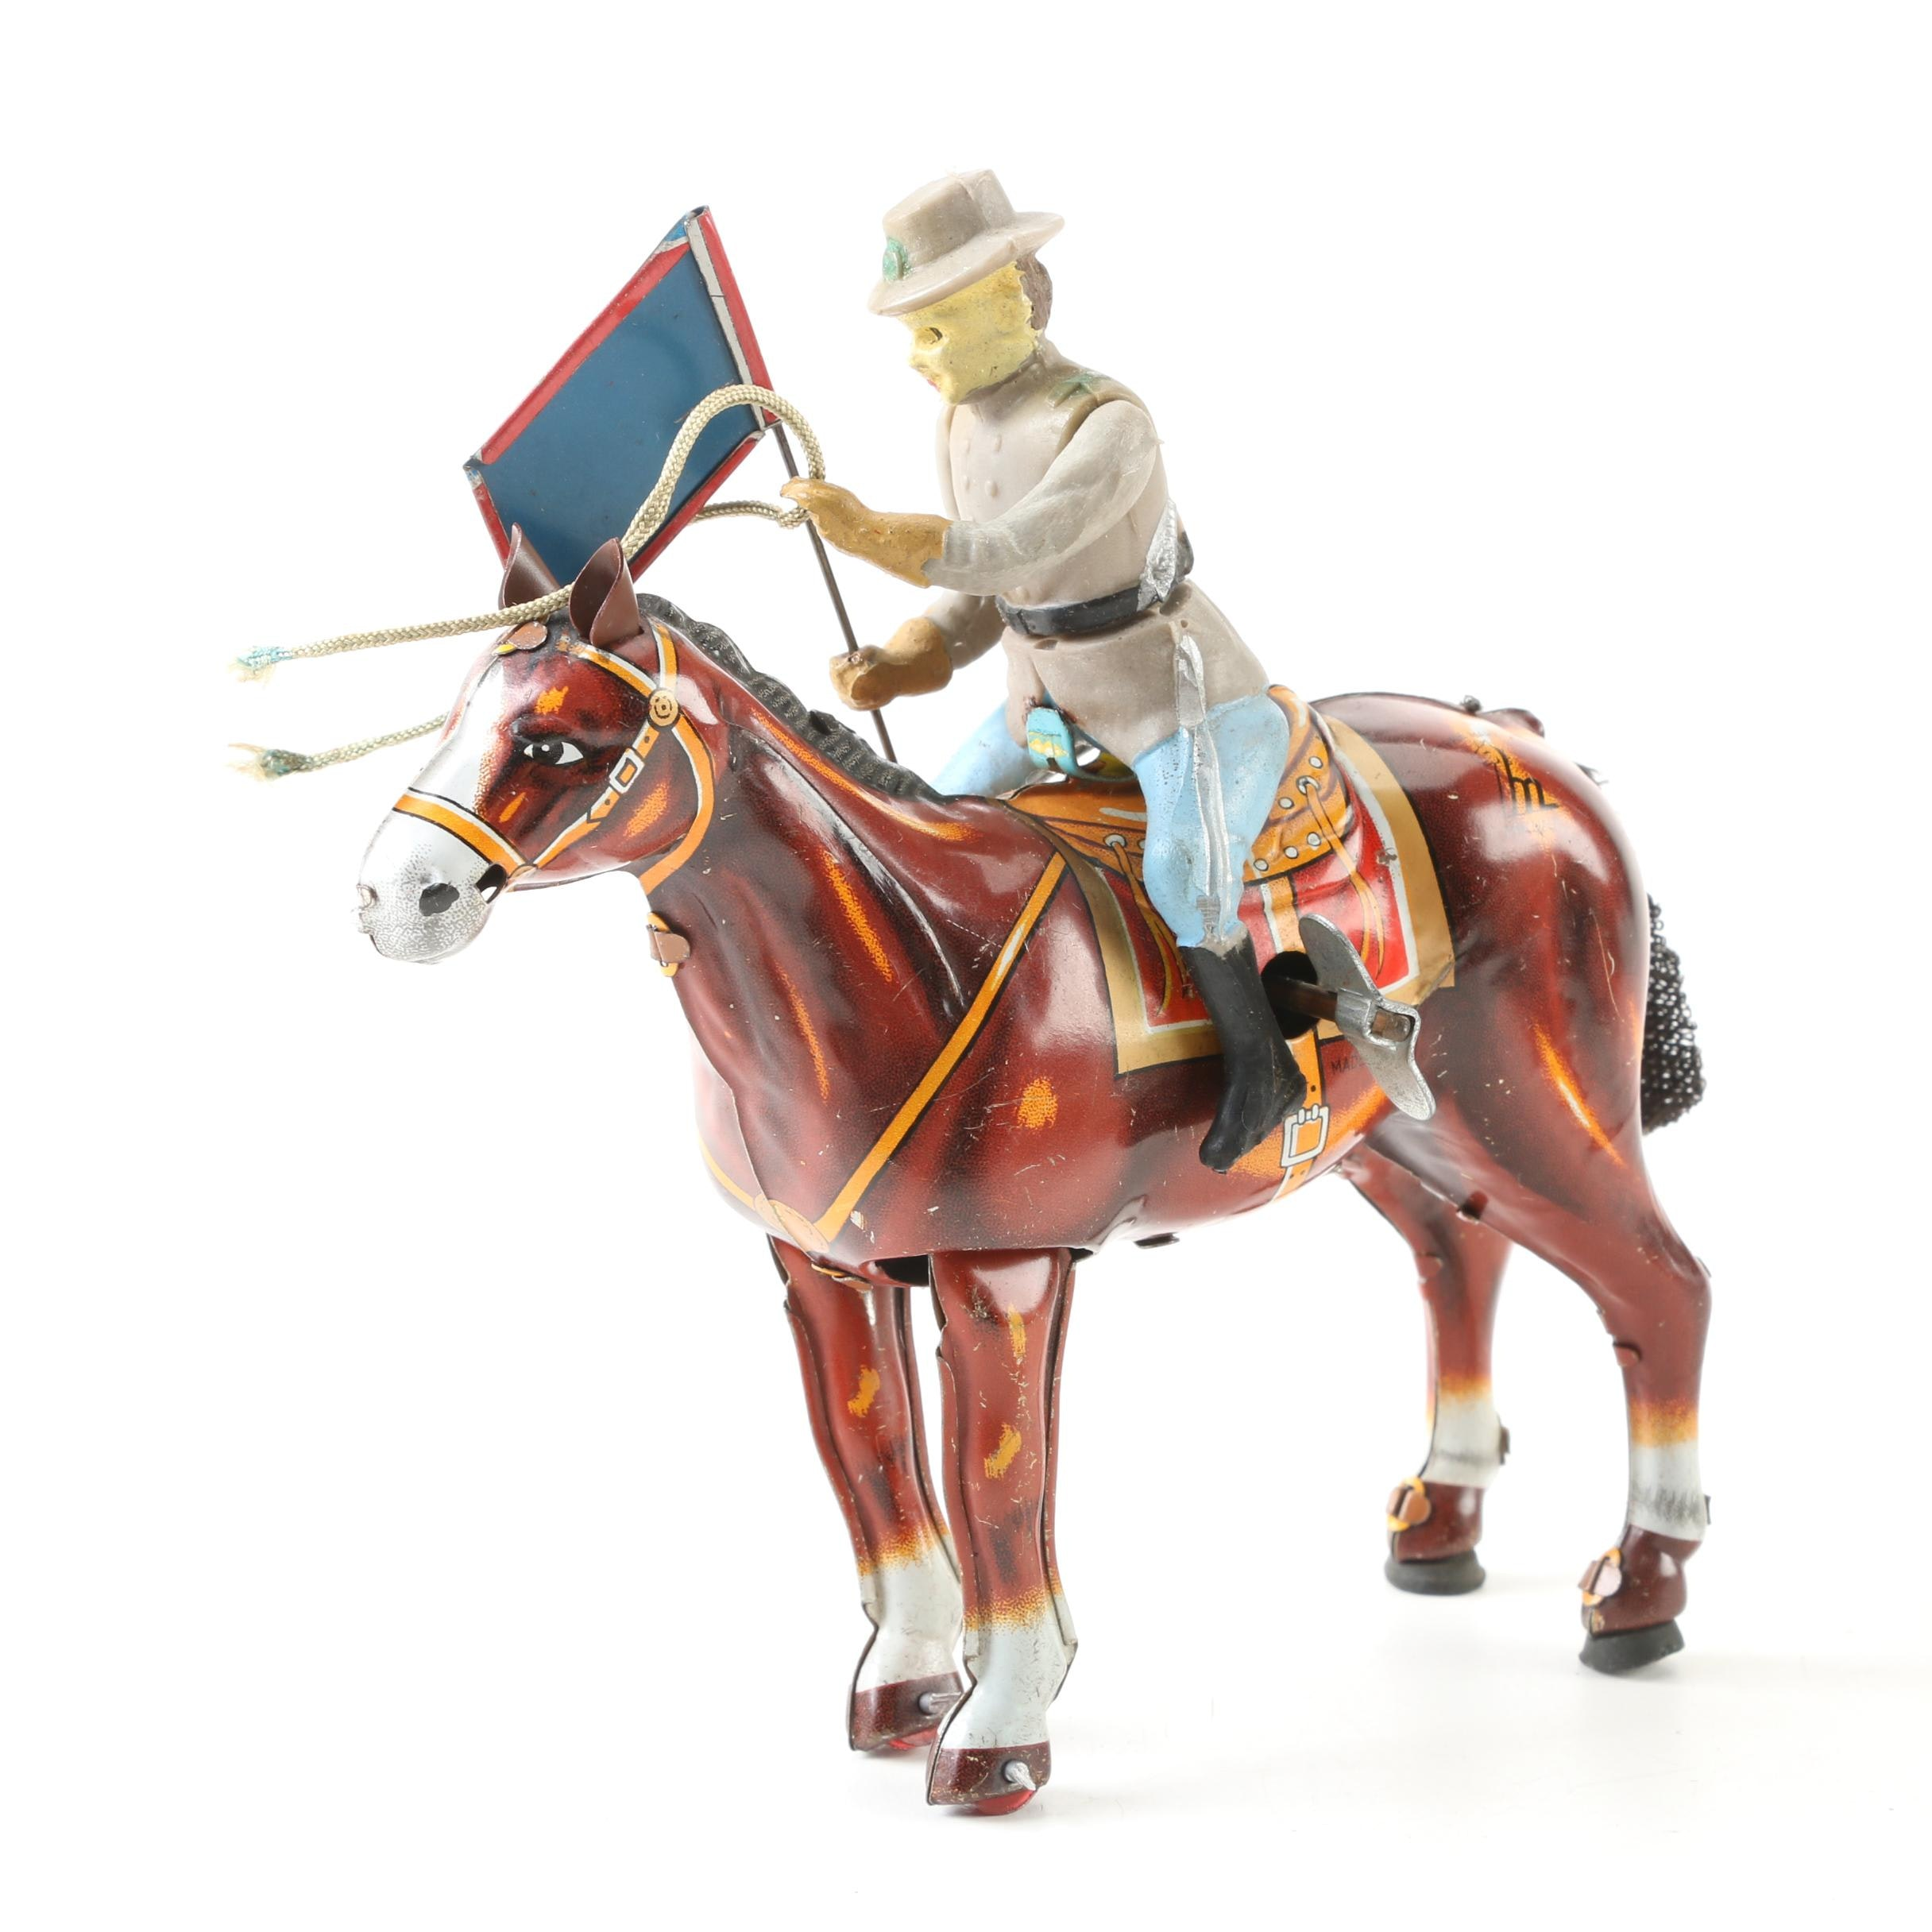 Mikuni Tin Windup Confederate Officer on Horse with Flag, 1950's